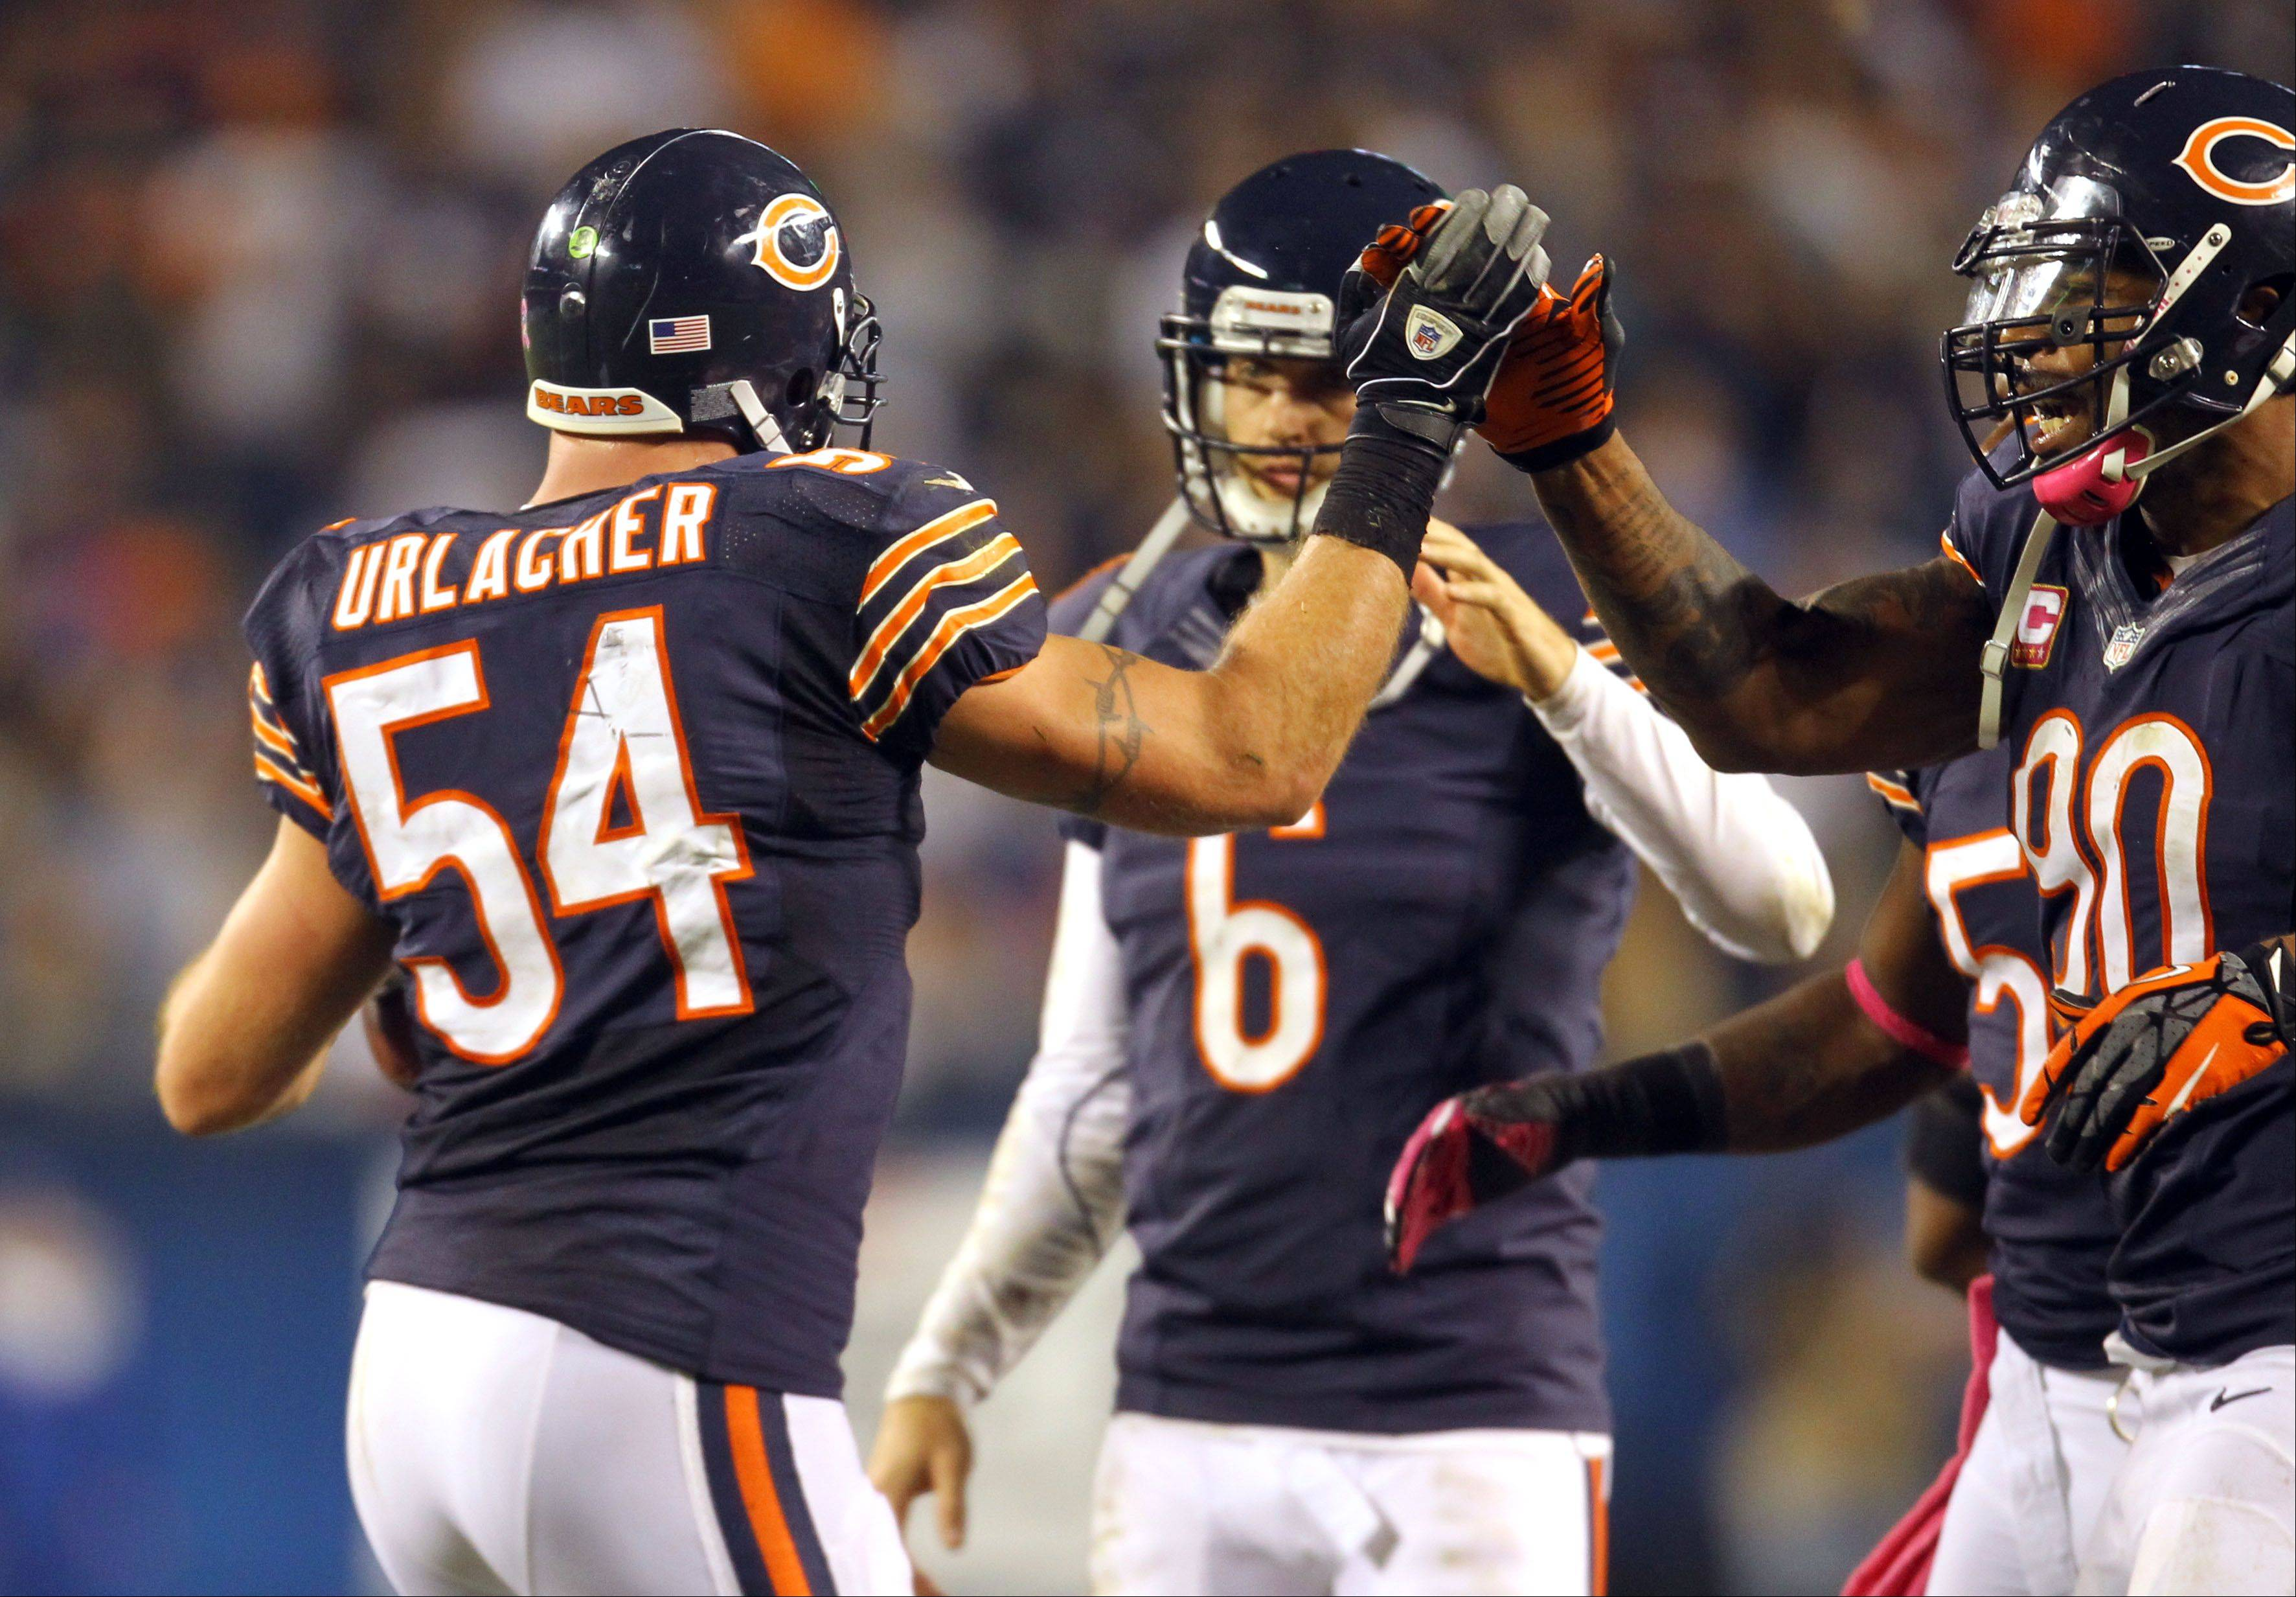 Chicago Bears middle linebacker Brian Urlacher gets high fives after recovering a fumble on the one-yard line .